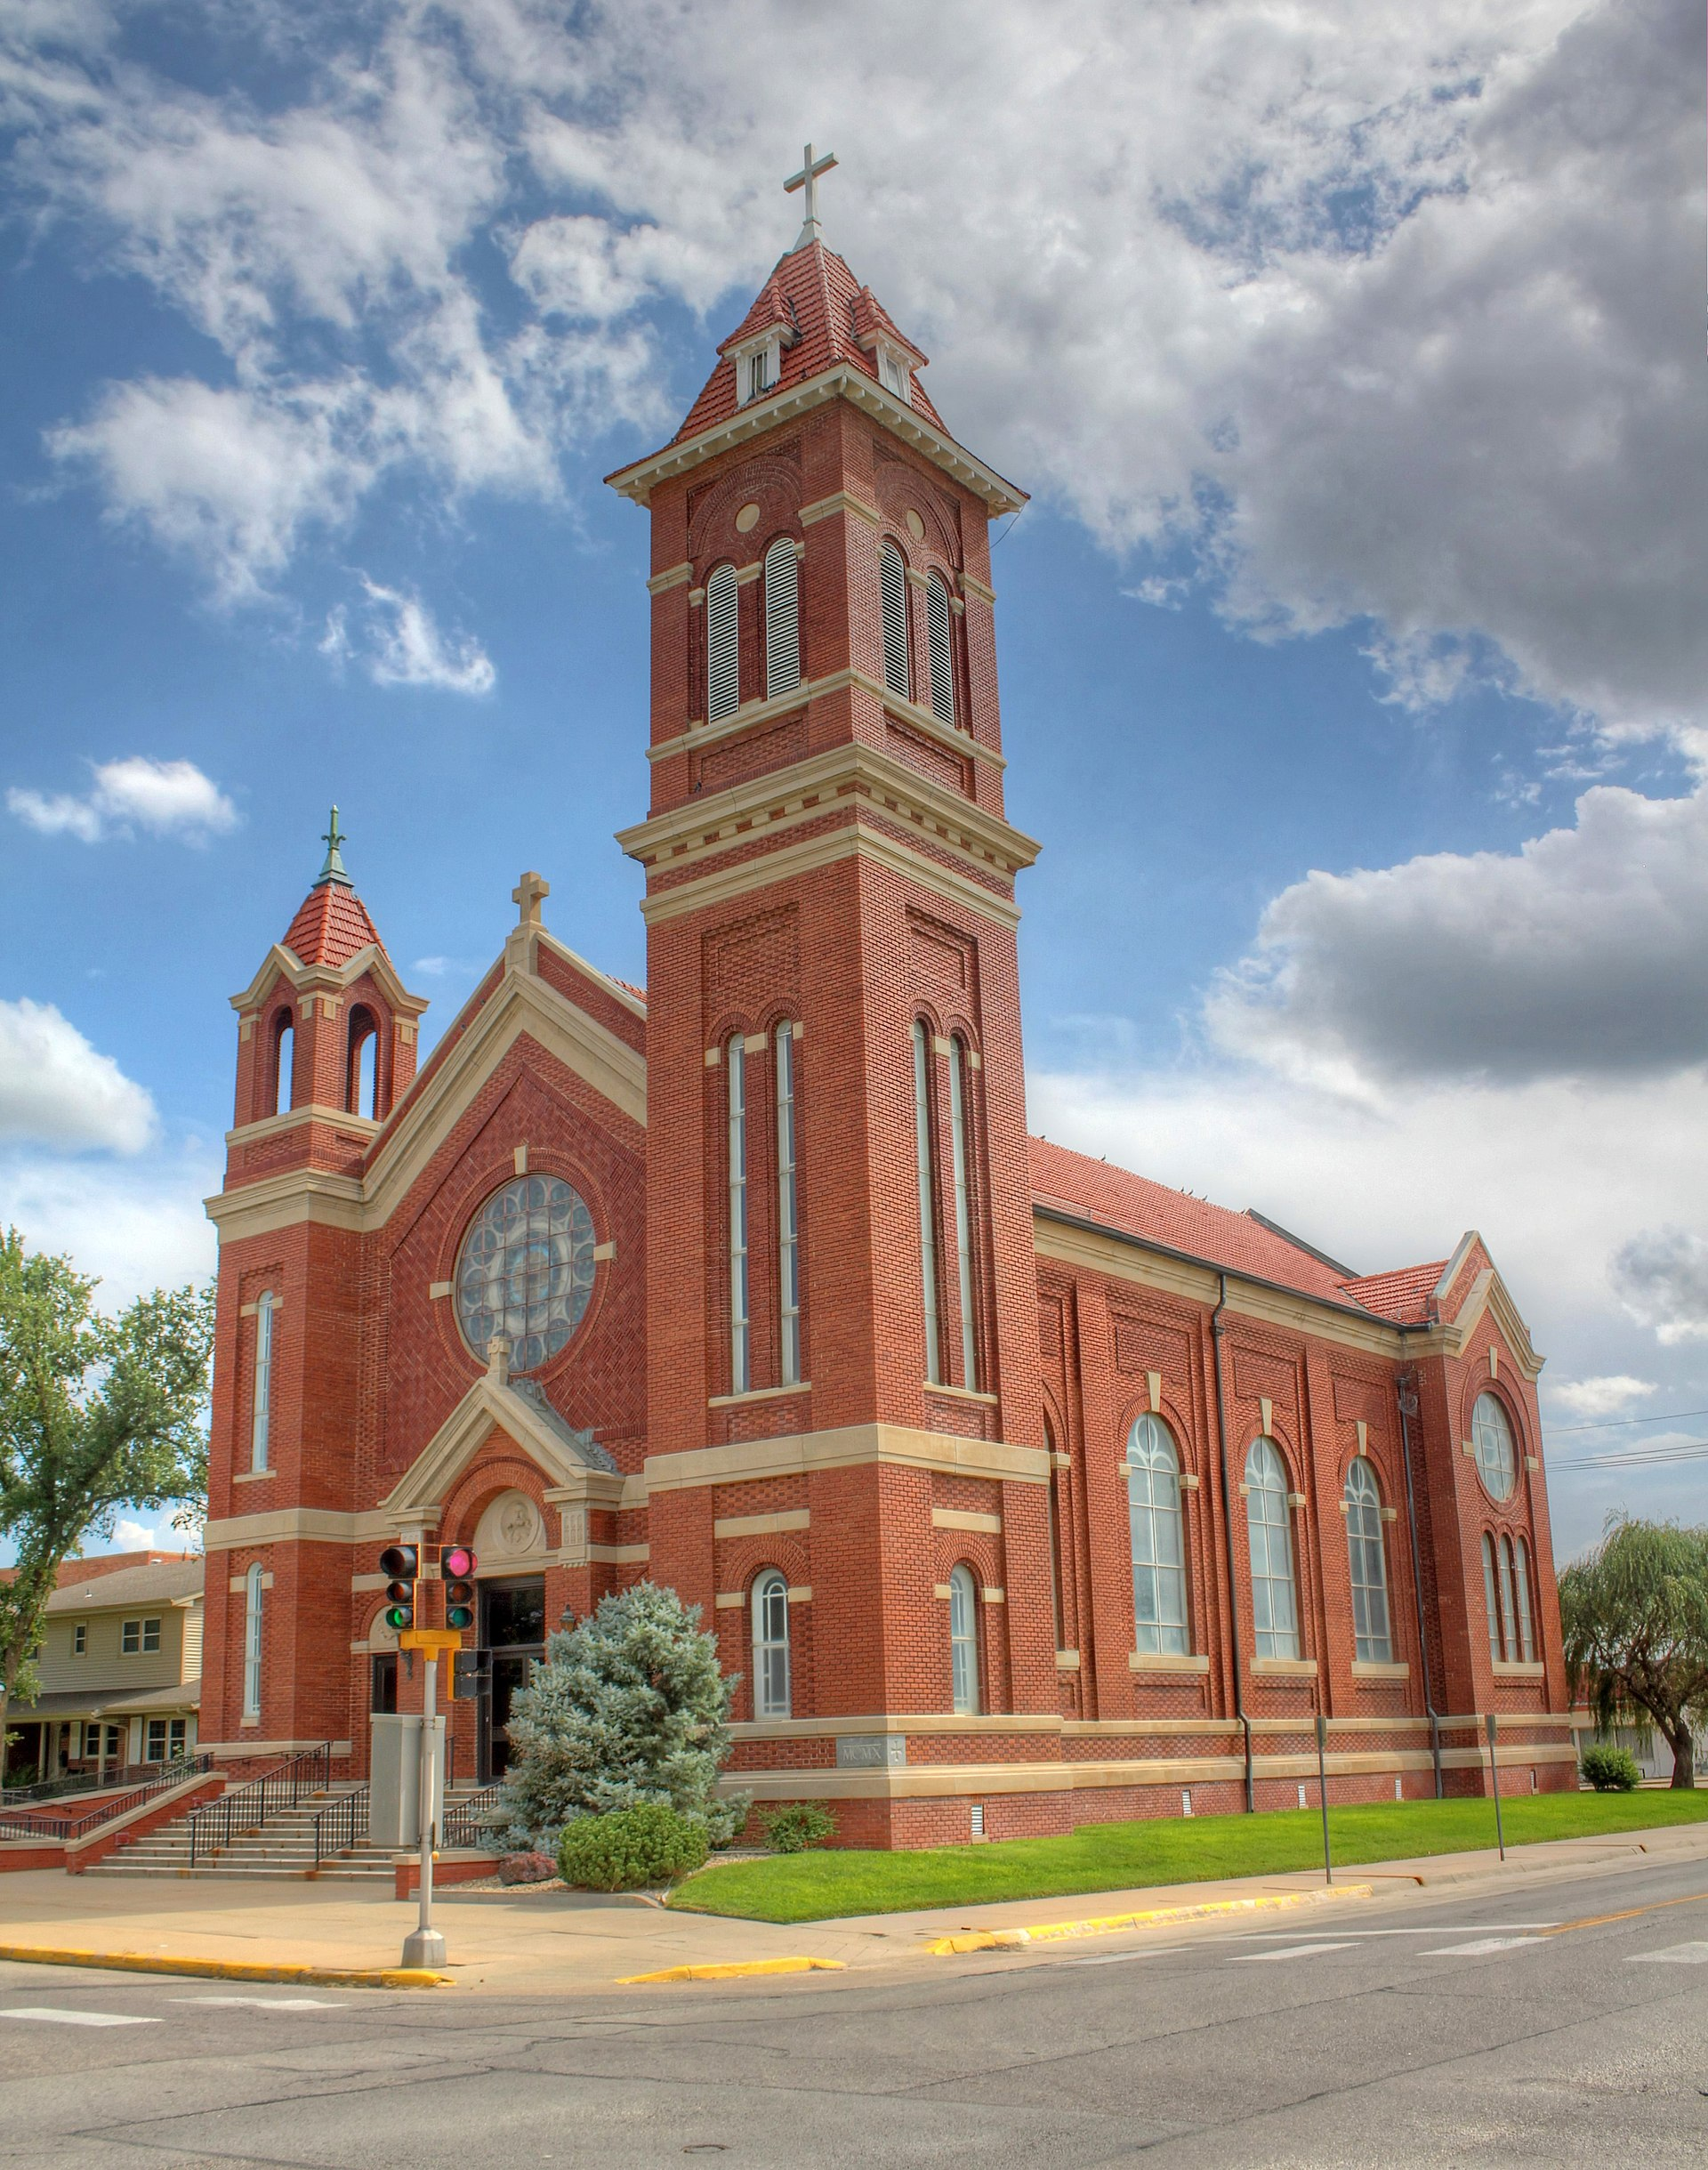 south hutchinson catholic singles Browse profiles & photos of kansas diocese of wichita catholic singles and join  catholicmatchcom, the clear leader in  john, 76 from south hutchinson, ks.